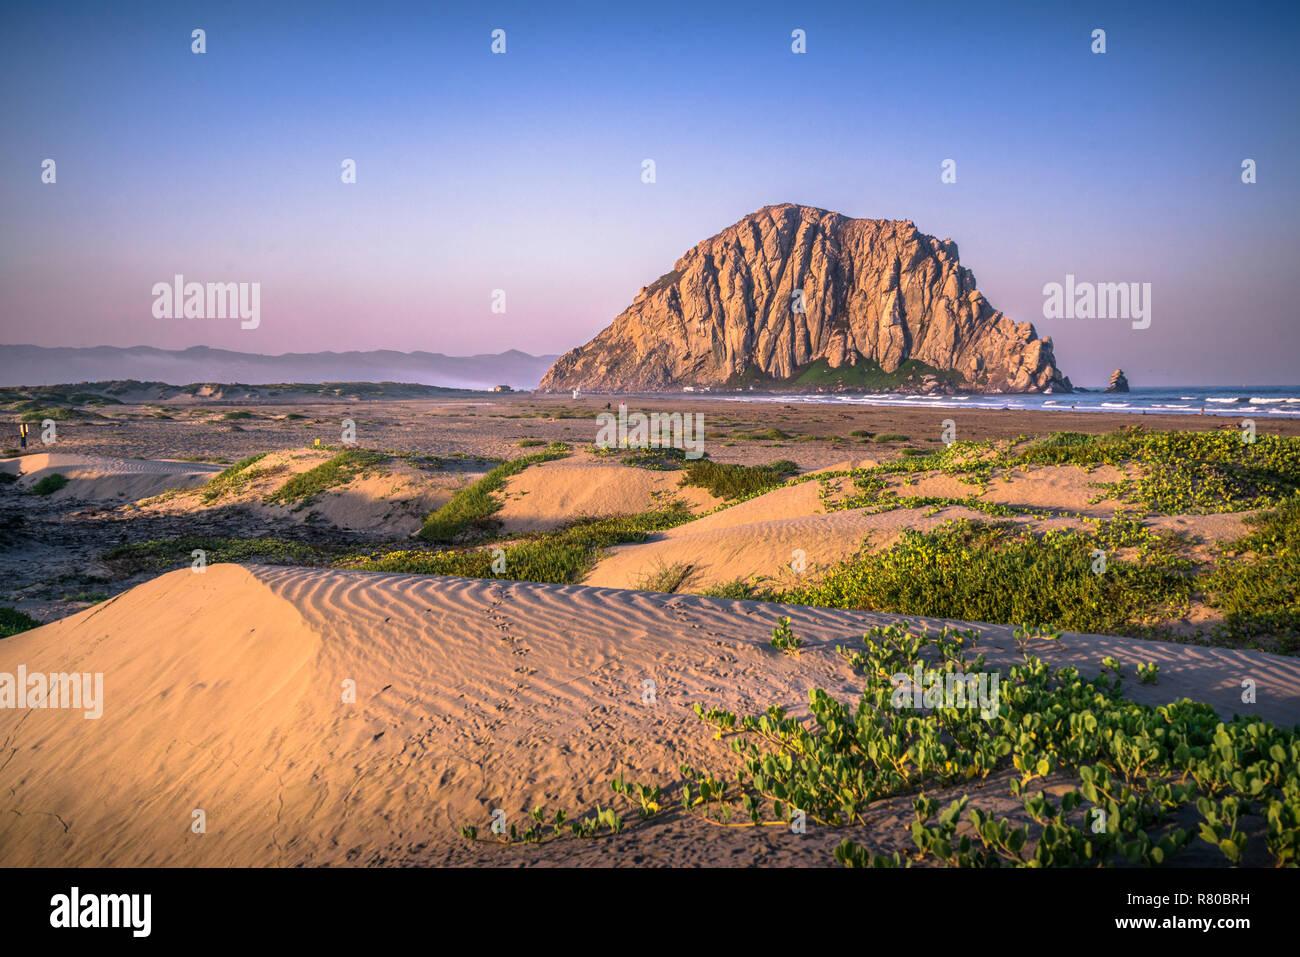 Big Sur, California, including Morro Bay, McWay Falls, Bixby Creek, Pfieffer Beach, and Ragged Point - Stock Image